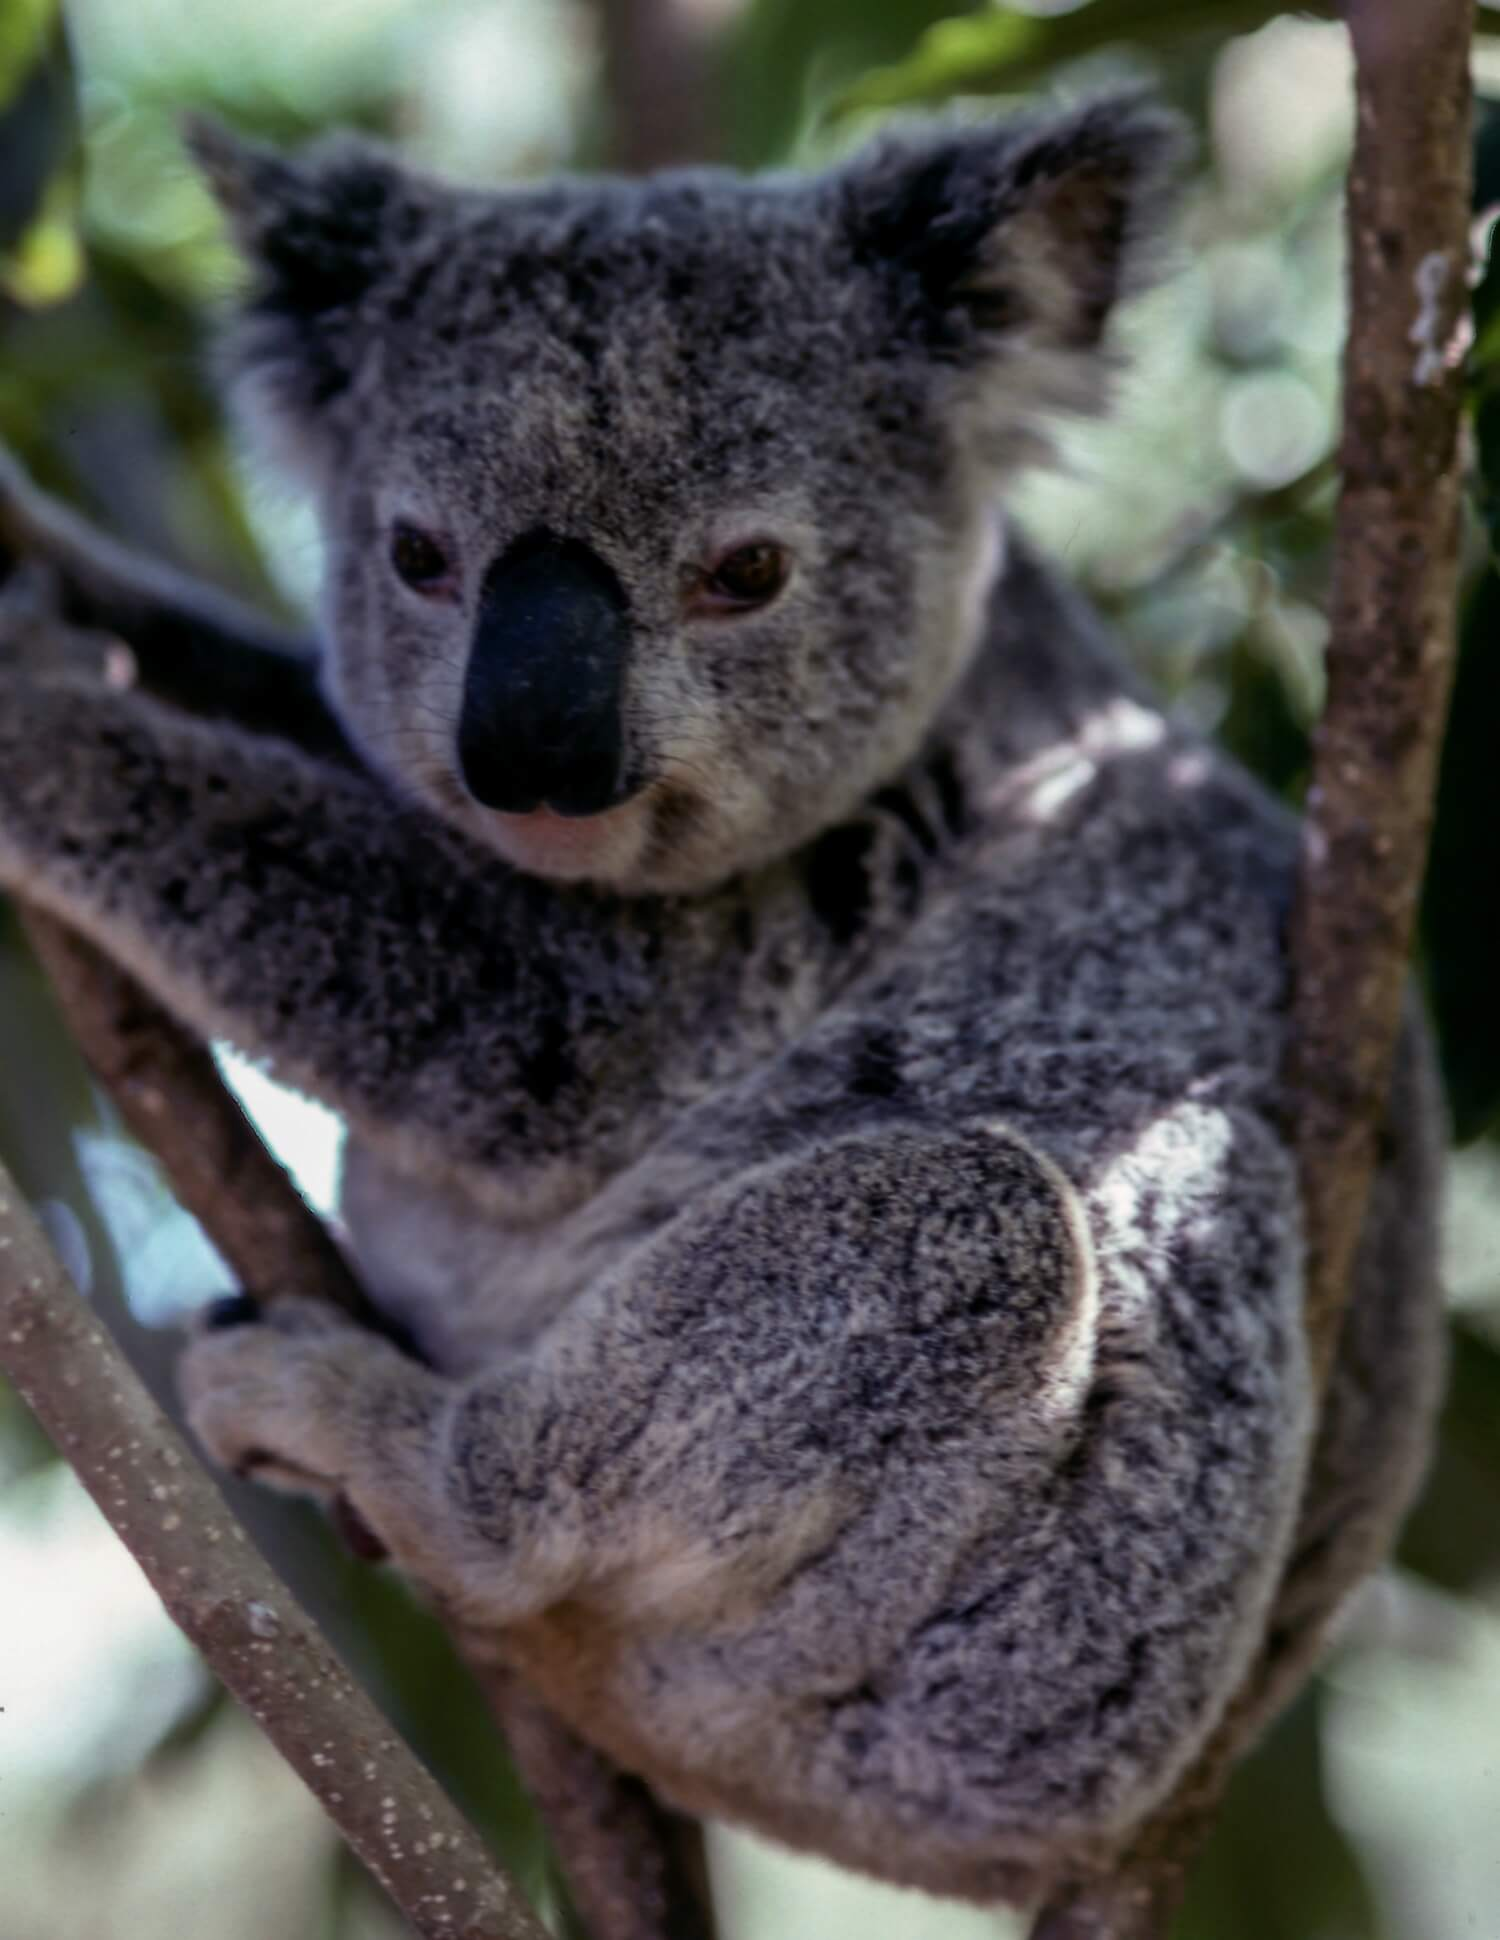 Koala sitting in a tree, looking to the side of camera